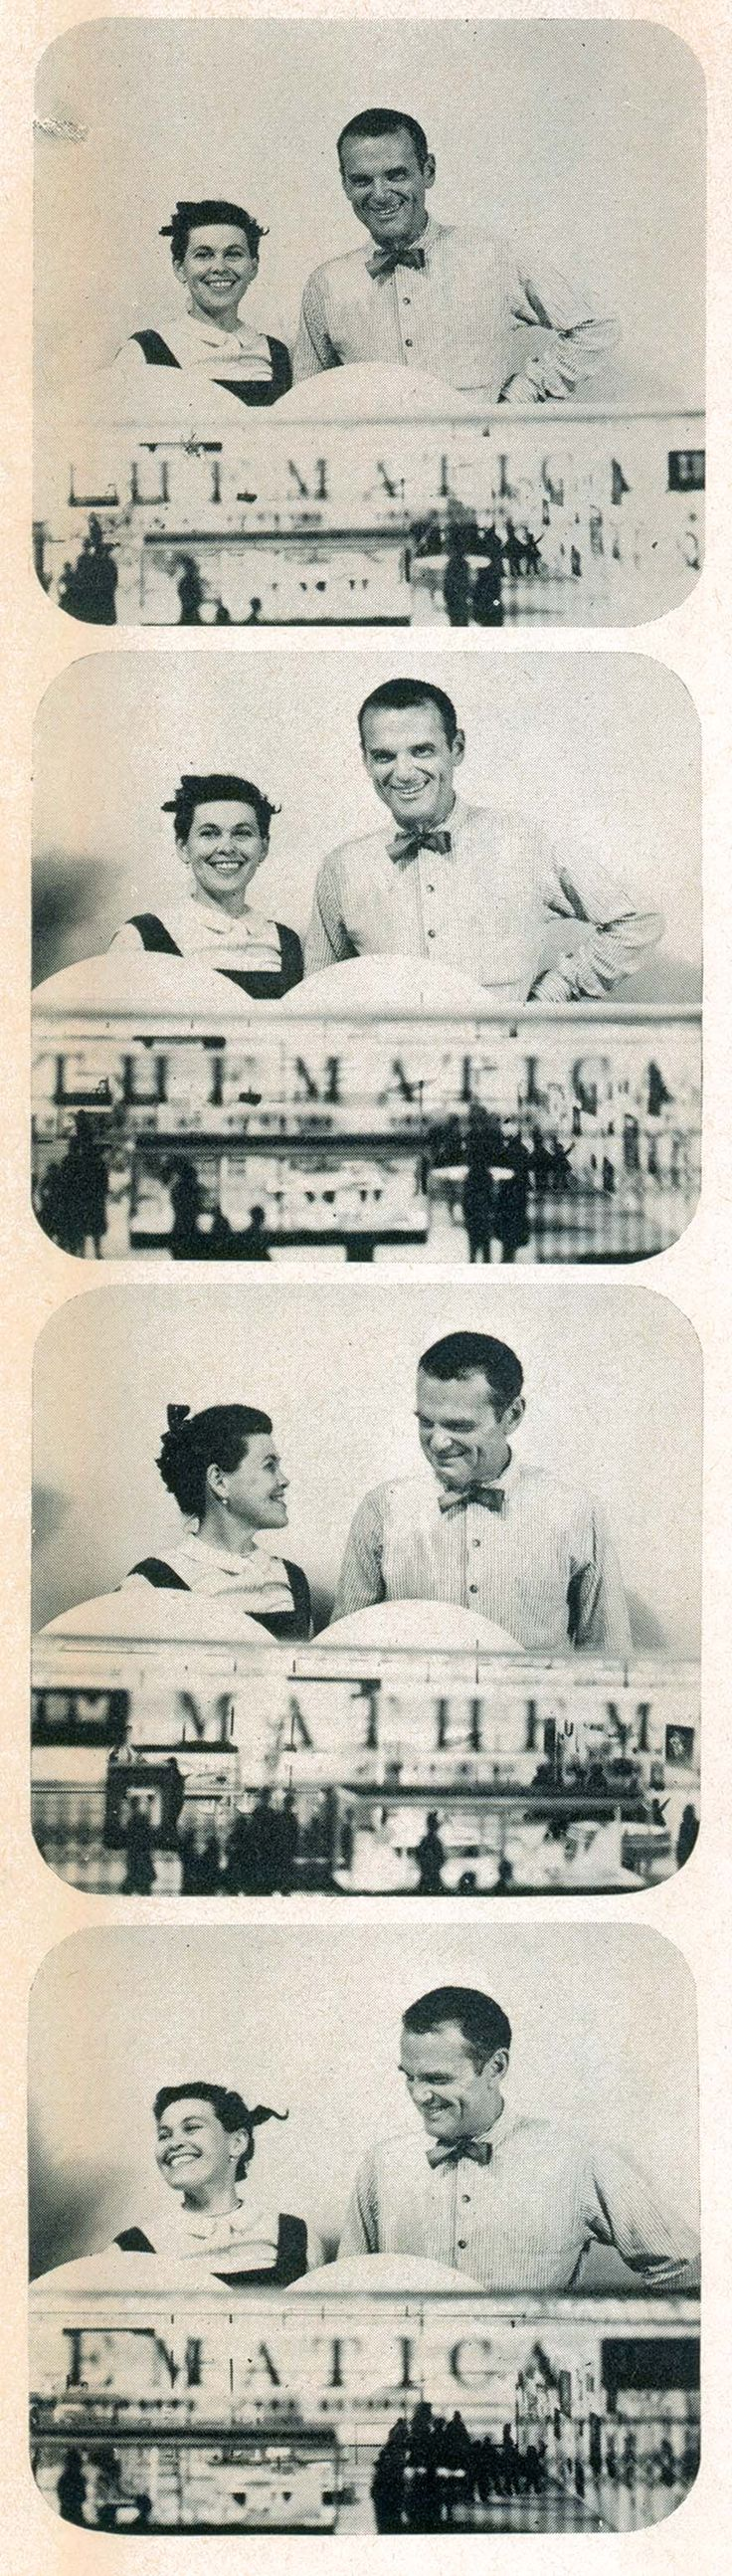 Charles and Ray Eames with a model of their Mathematica Exhibition.  Now at The New York Science Museum, The Boston Museum of Science, and soon at The Henry Ford  #thehenryford